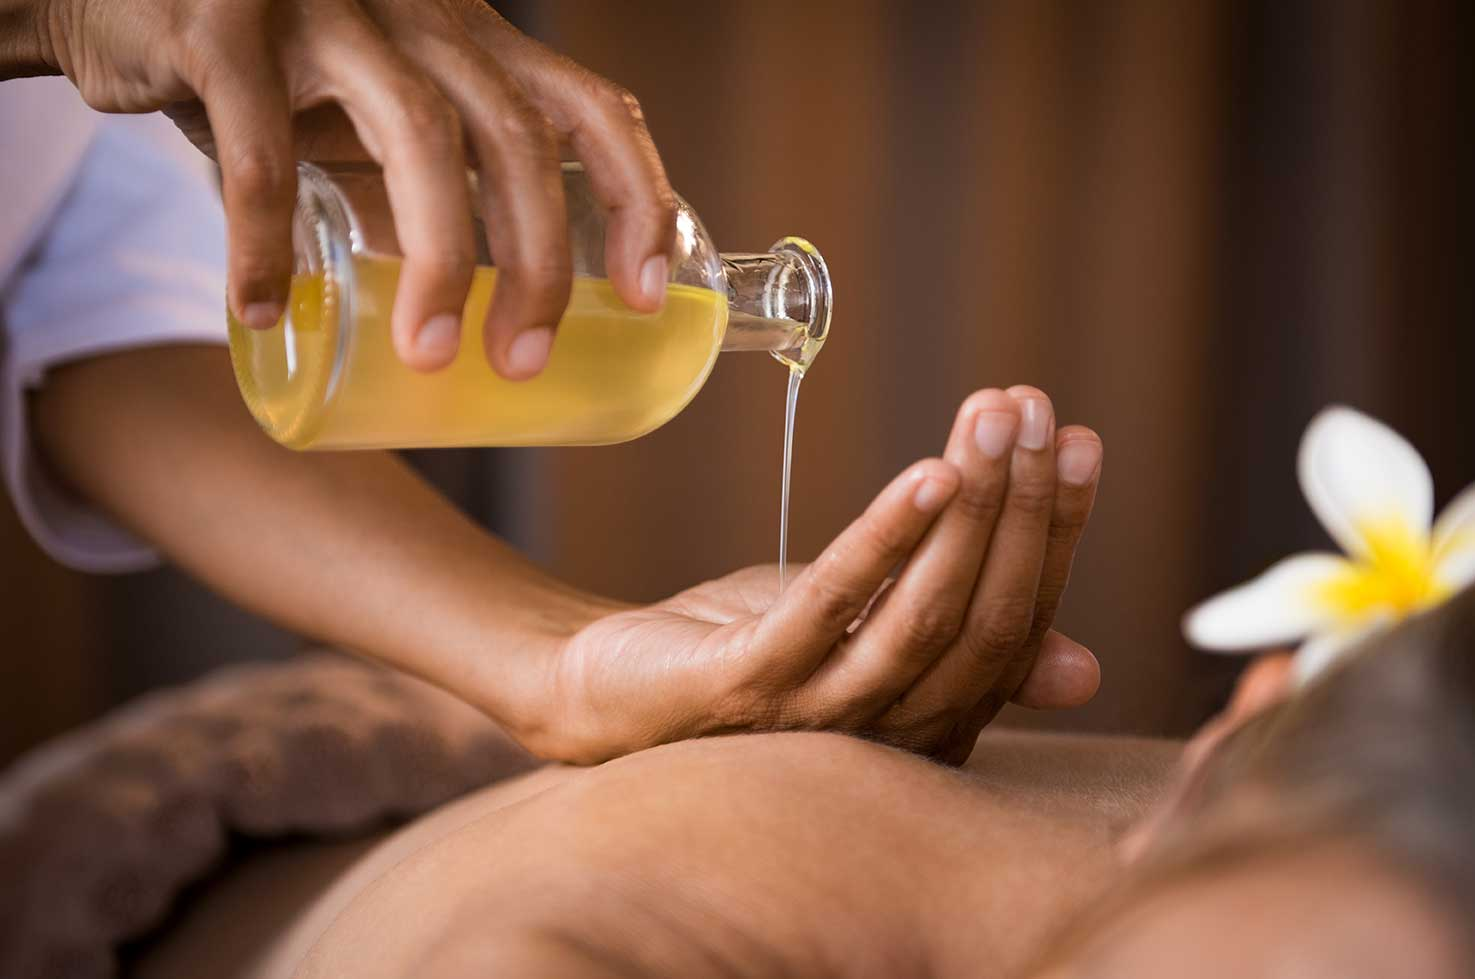 Massage oil is being prepared for a relaxing treatment at the swiss wellnesshotel Bodmi